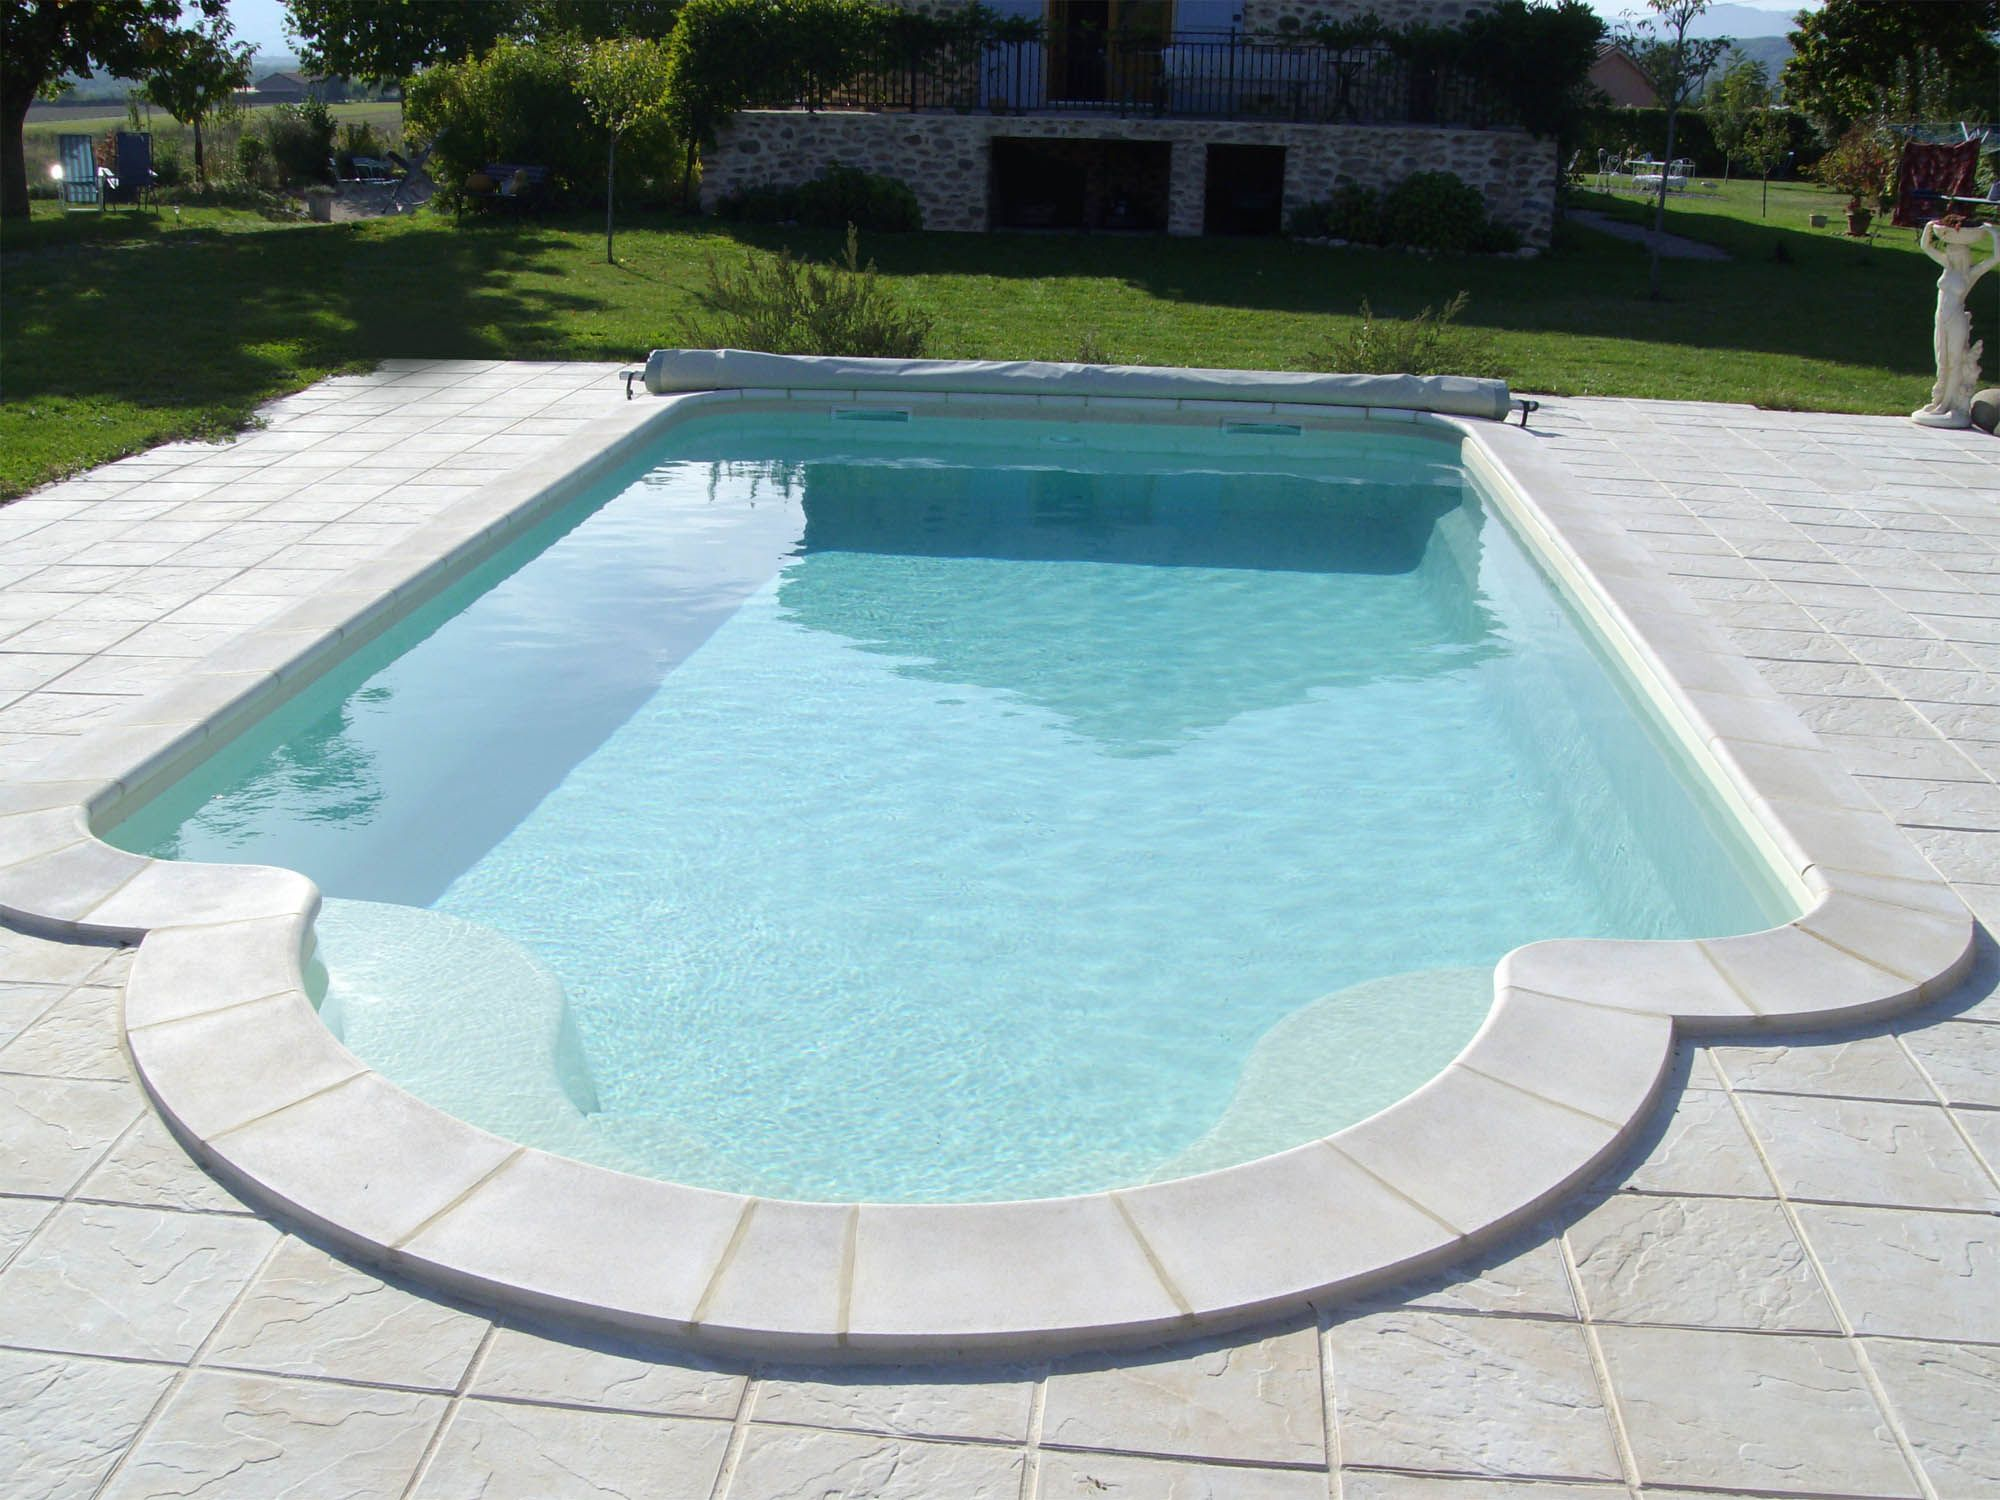 piscine coque grise best piscine coque unique grise marseille bouches du rhne france marseille. Black Bedroom Furniture Sets. Home Design Ideas